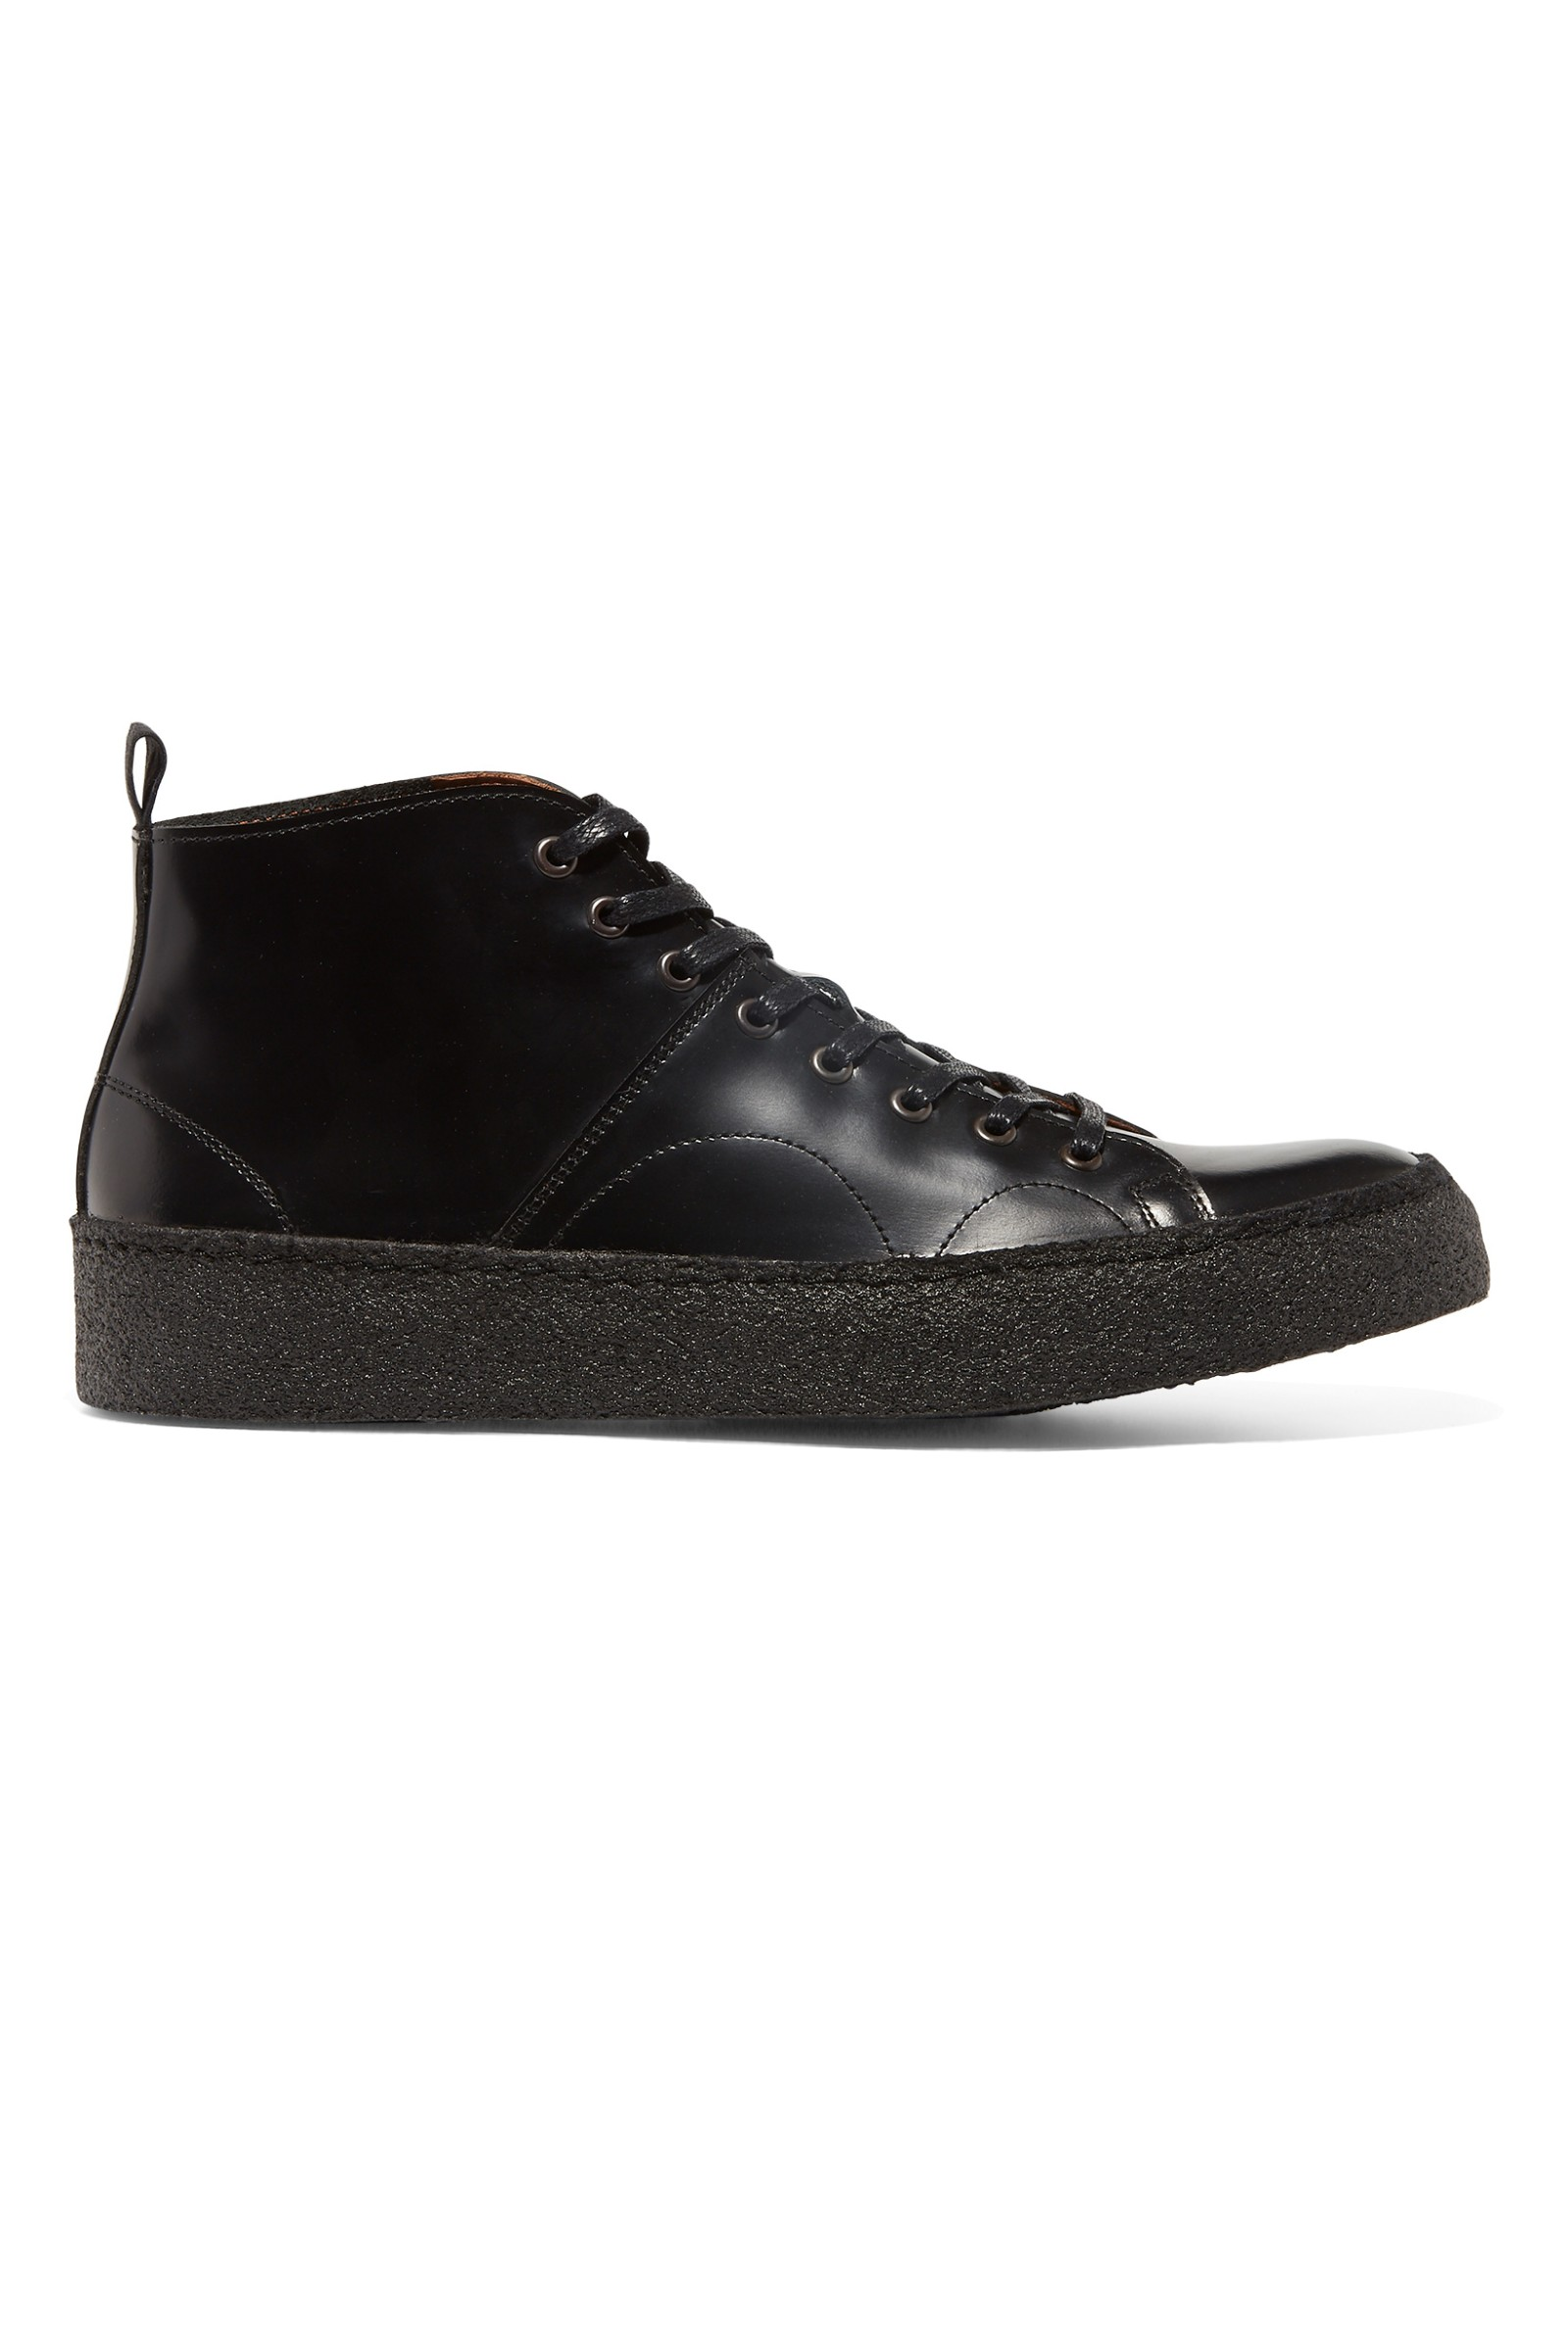 Fred Perry x George Cox Creeper Mid Leather